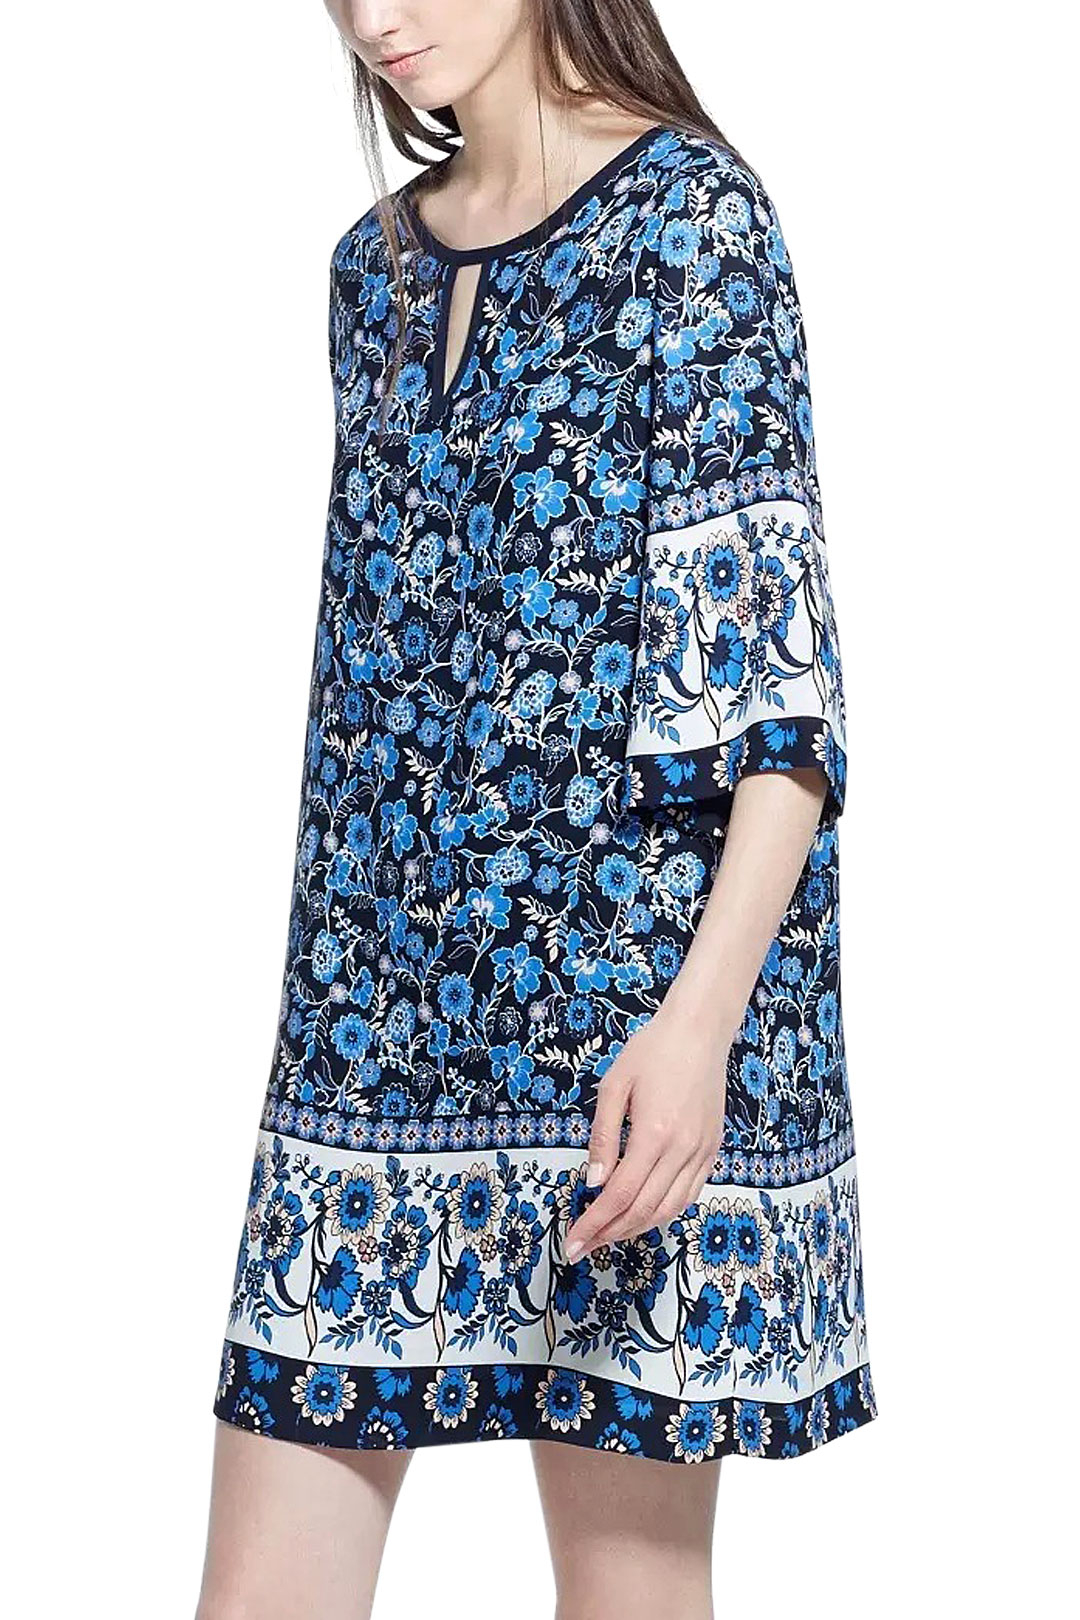 Blue Random Floral Print Shift Dress